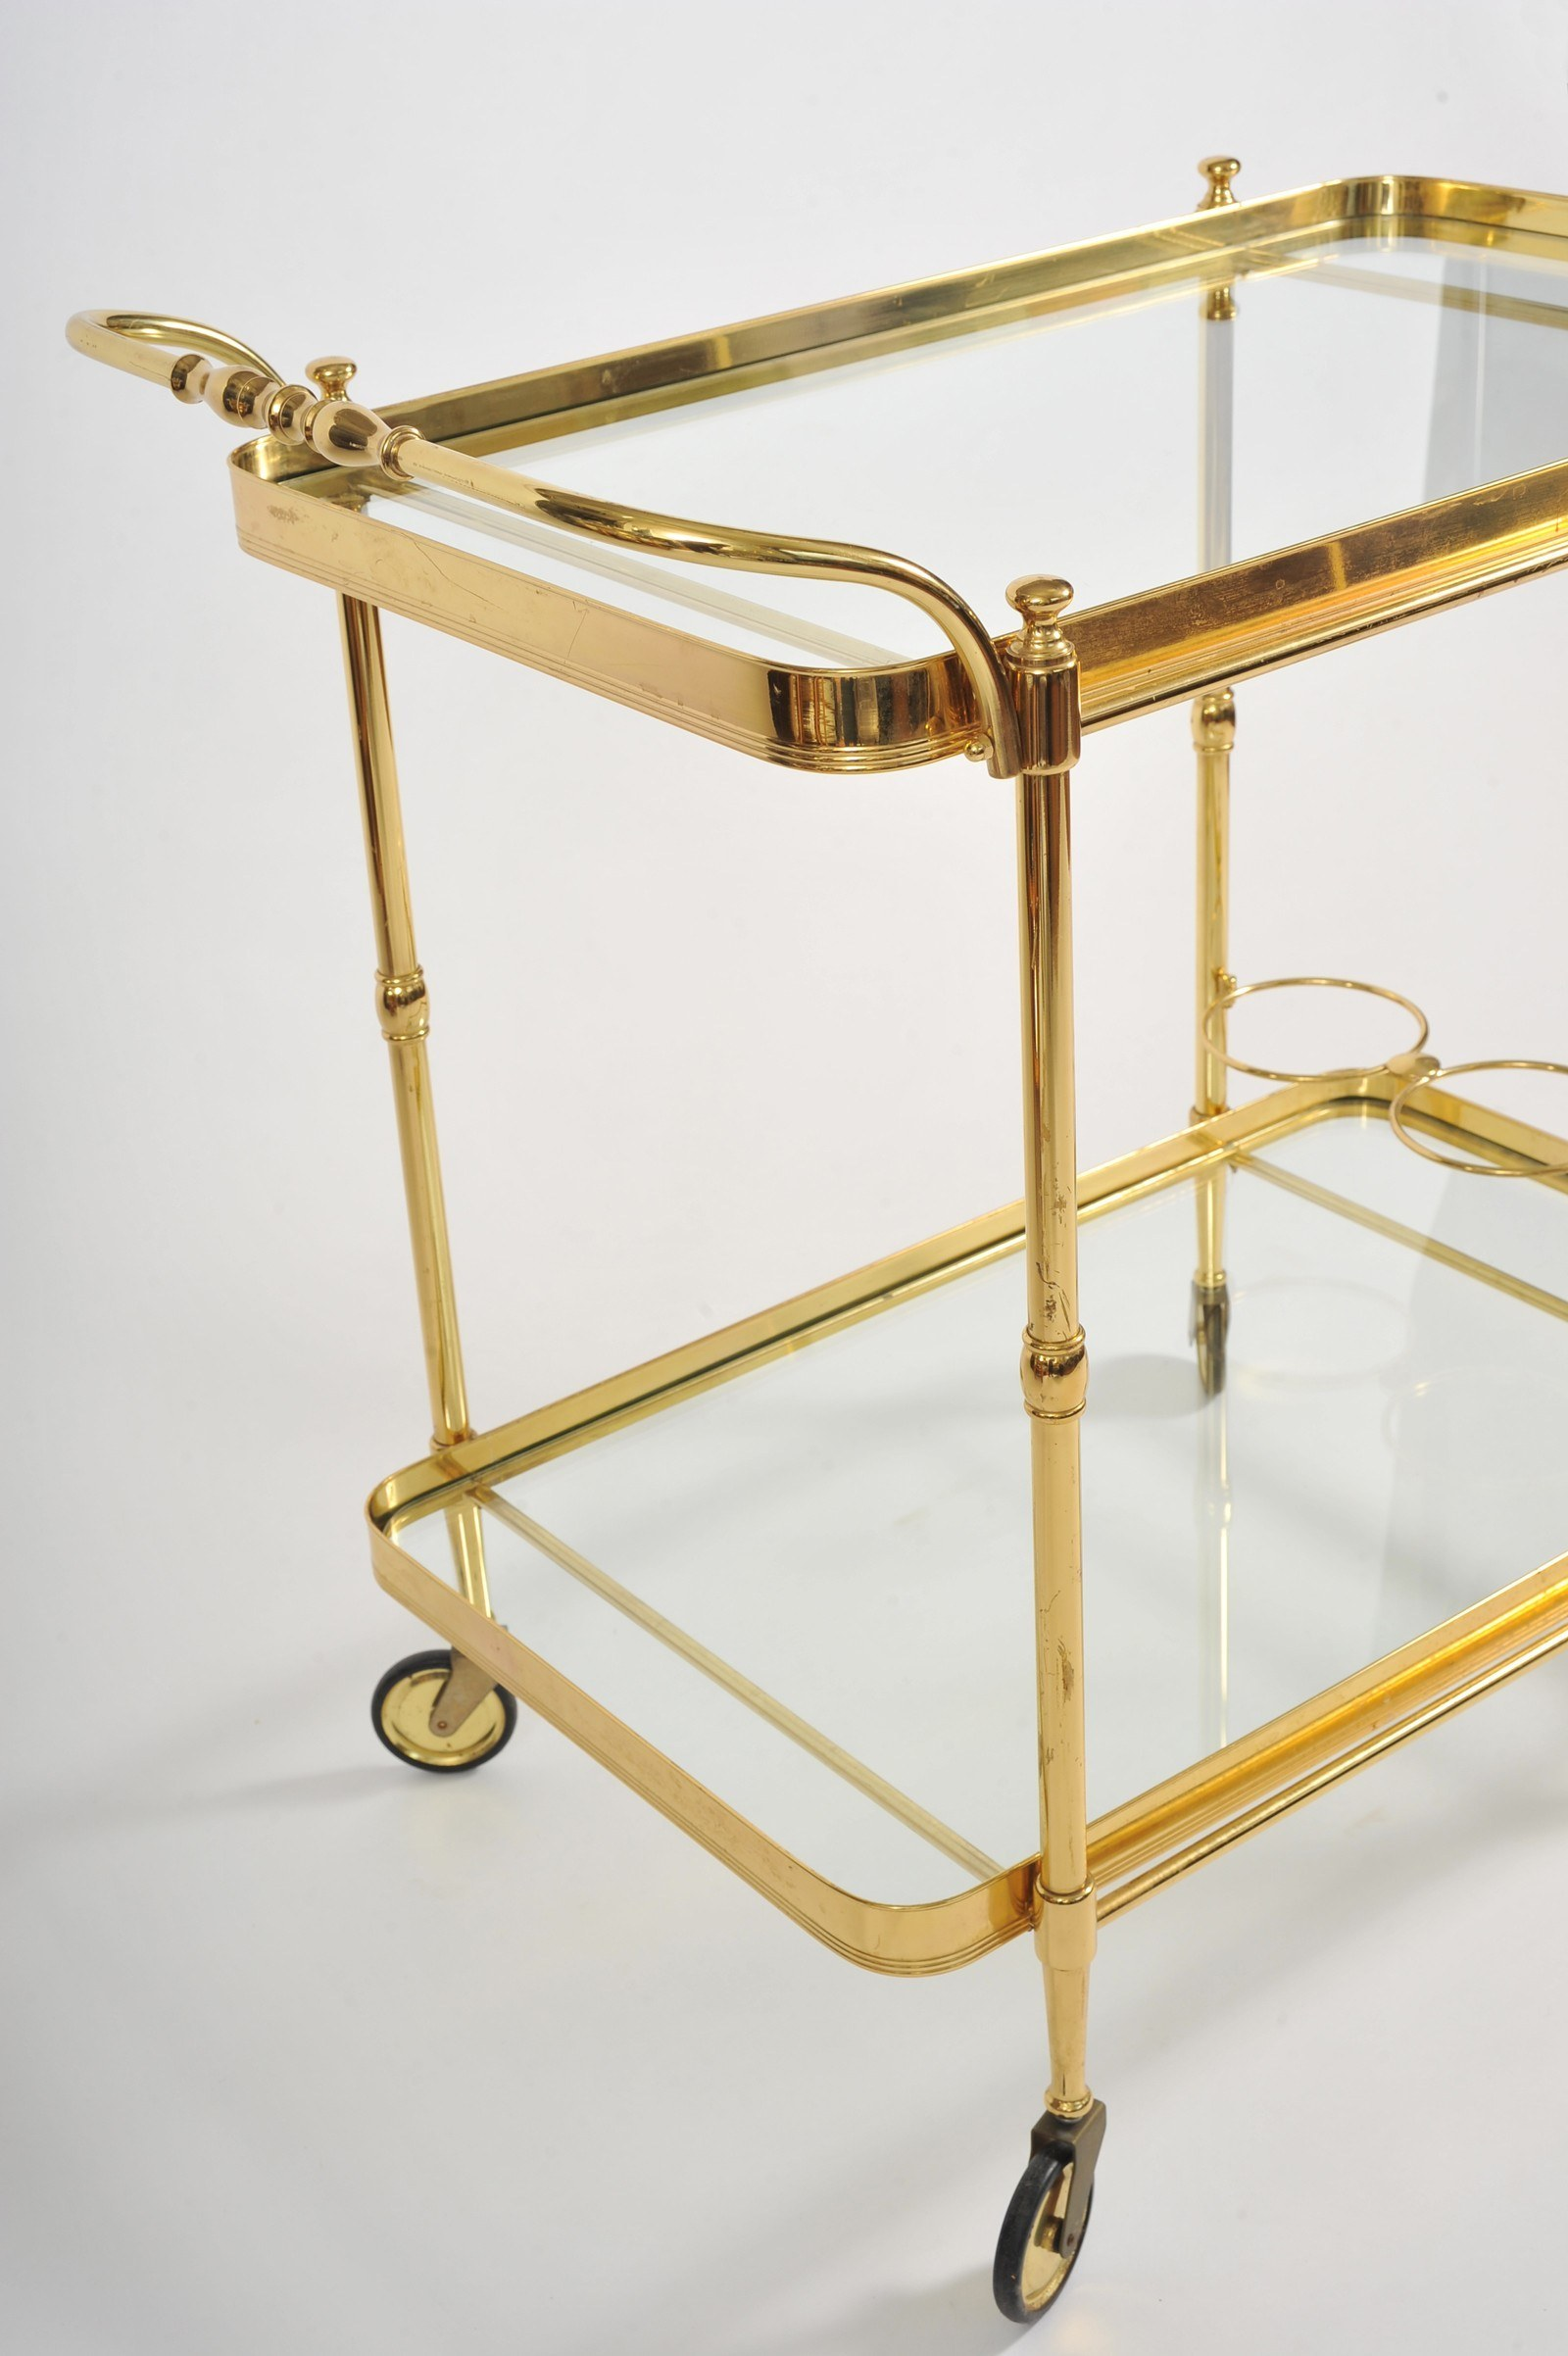 Valerie Wade Ams656 1950S Italian Brass Drinks Trolley 04